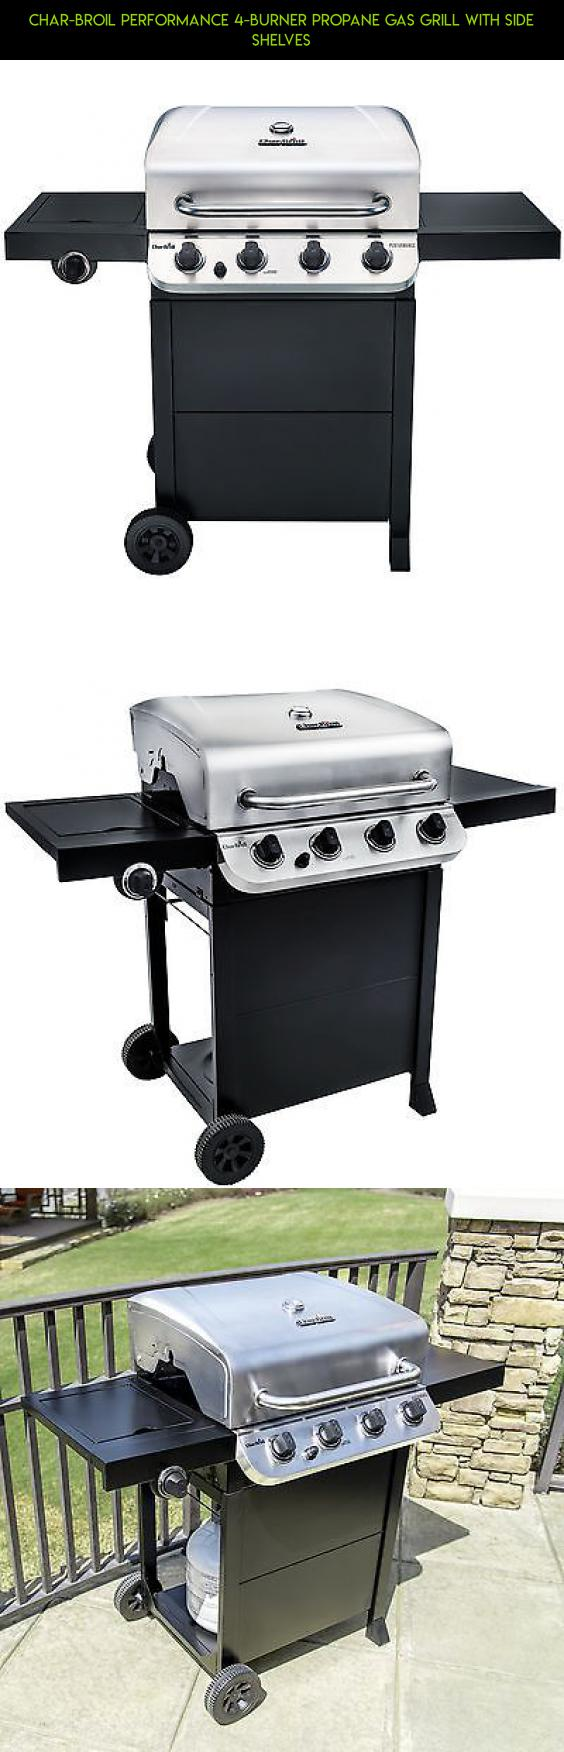 Char broil performance 4 burner propane gas grill with side shelves plans